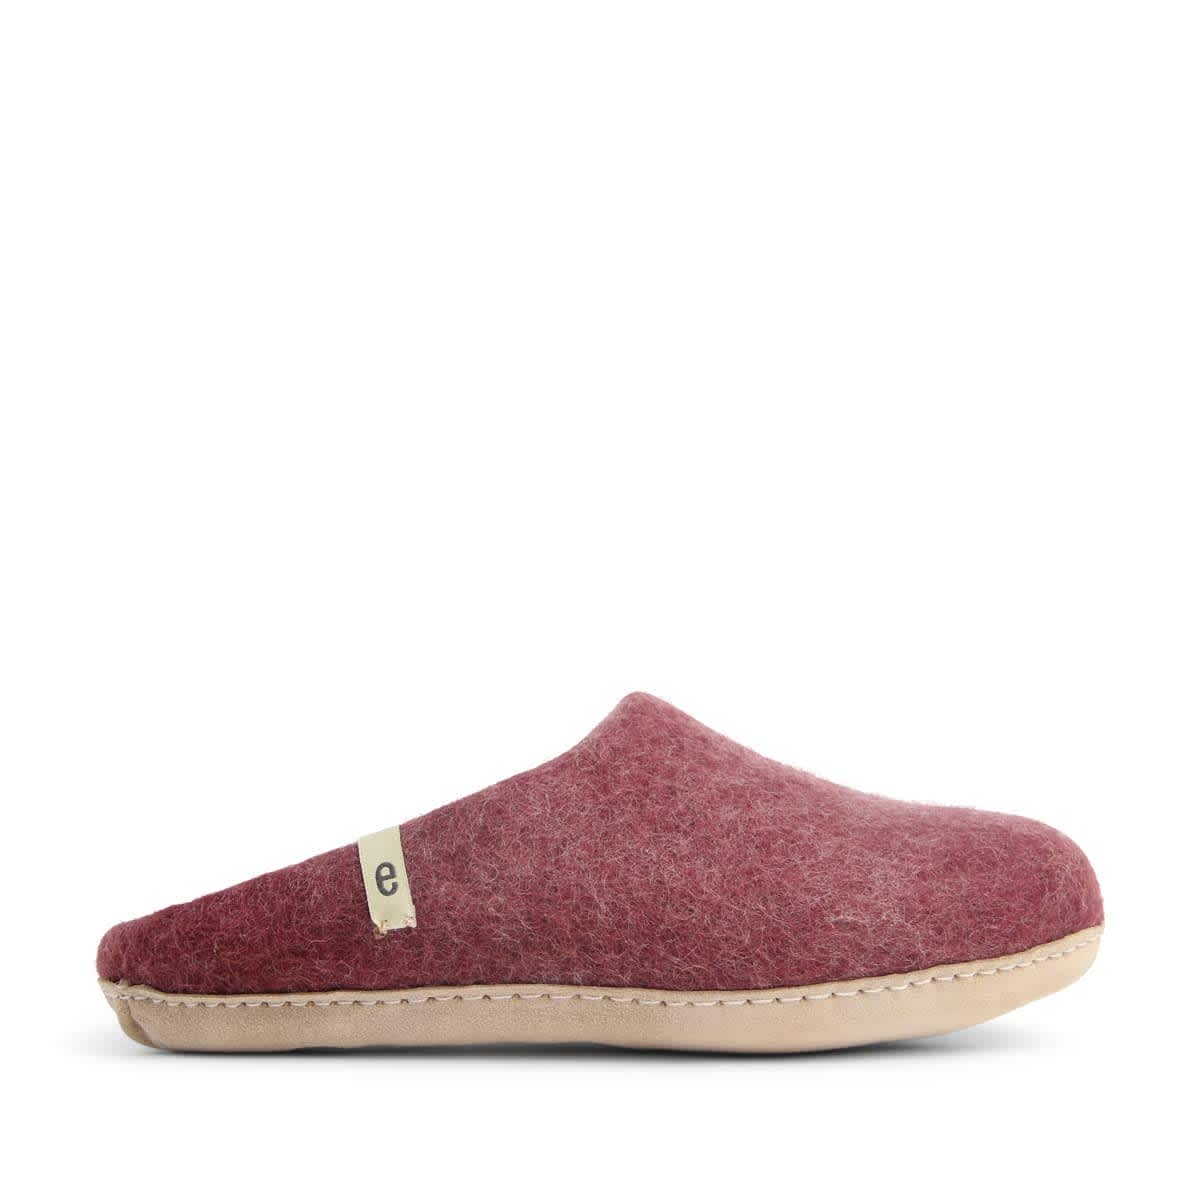 Egos Copenhagen Bordeaux Felted Wool Slippers